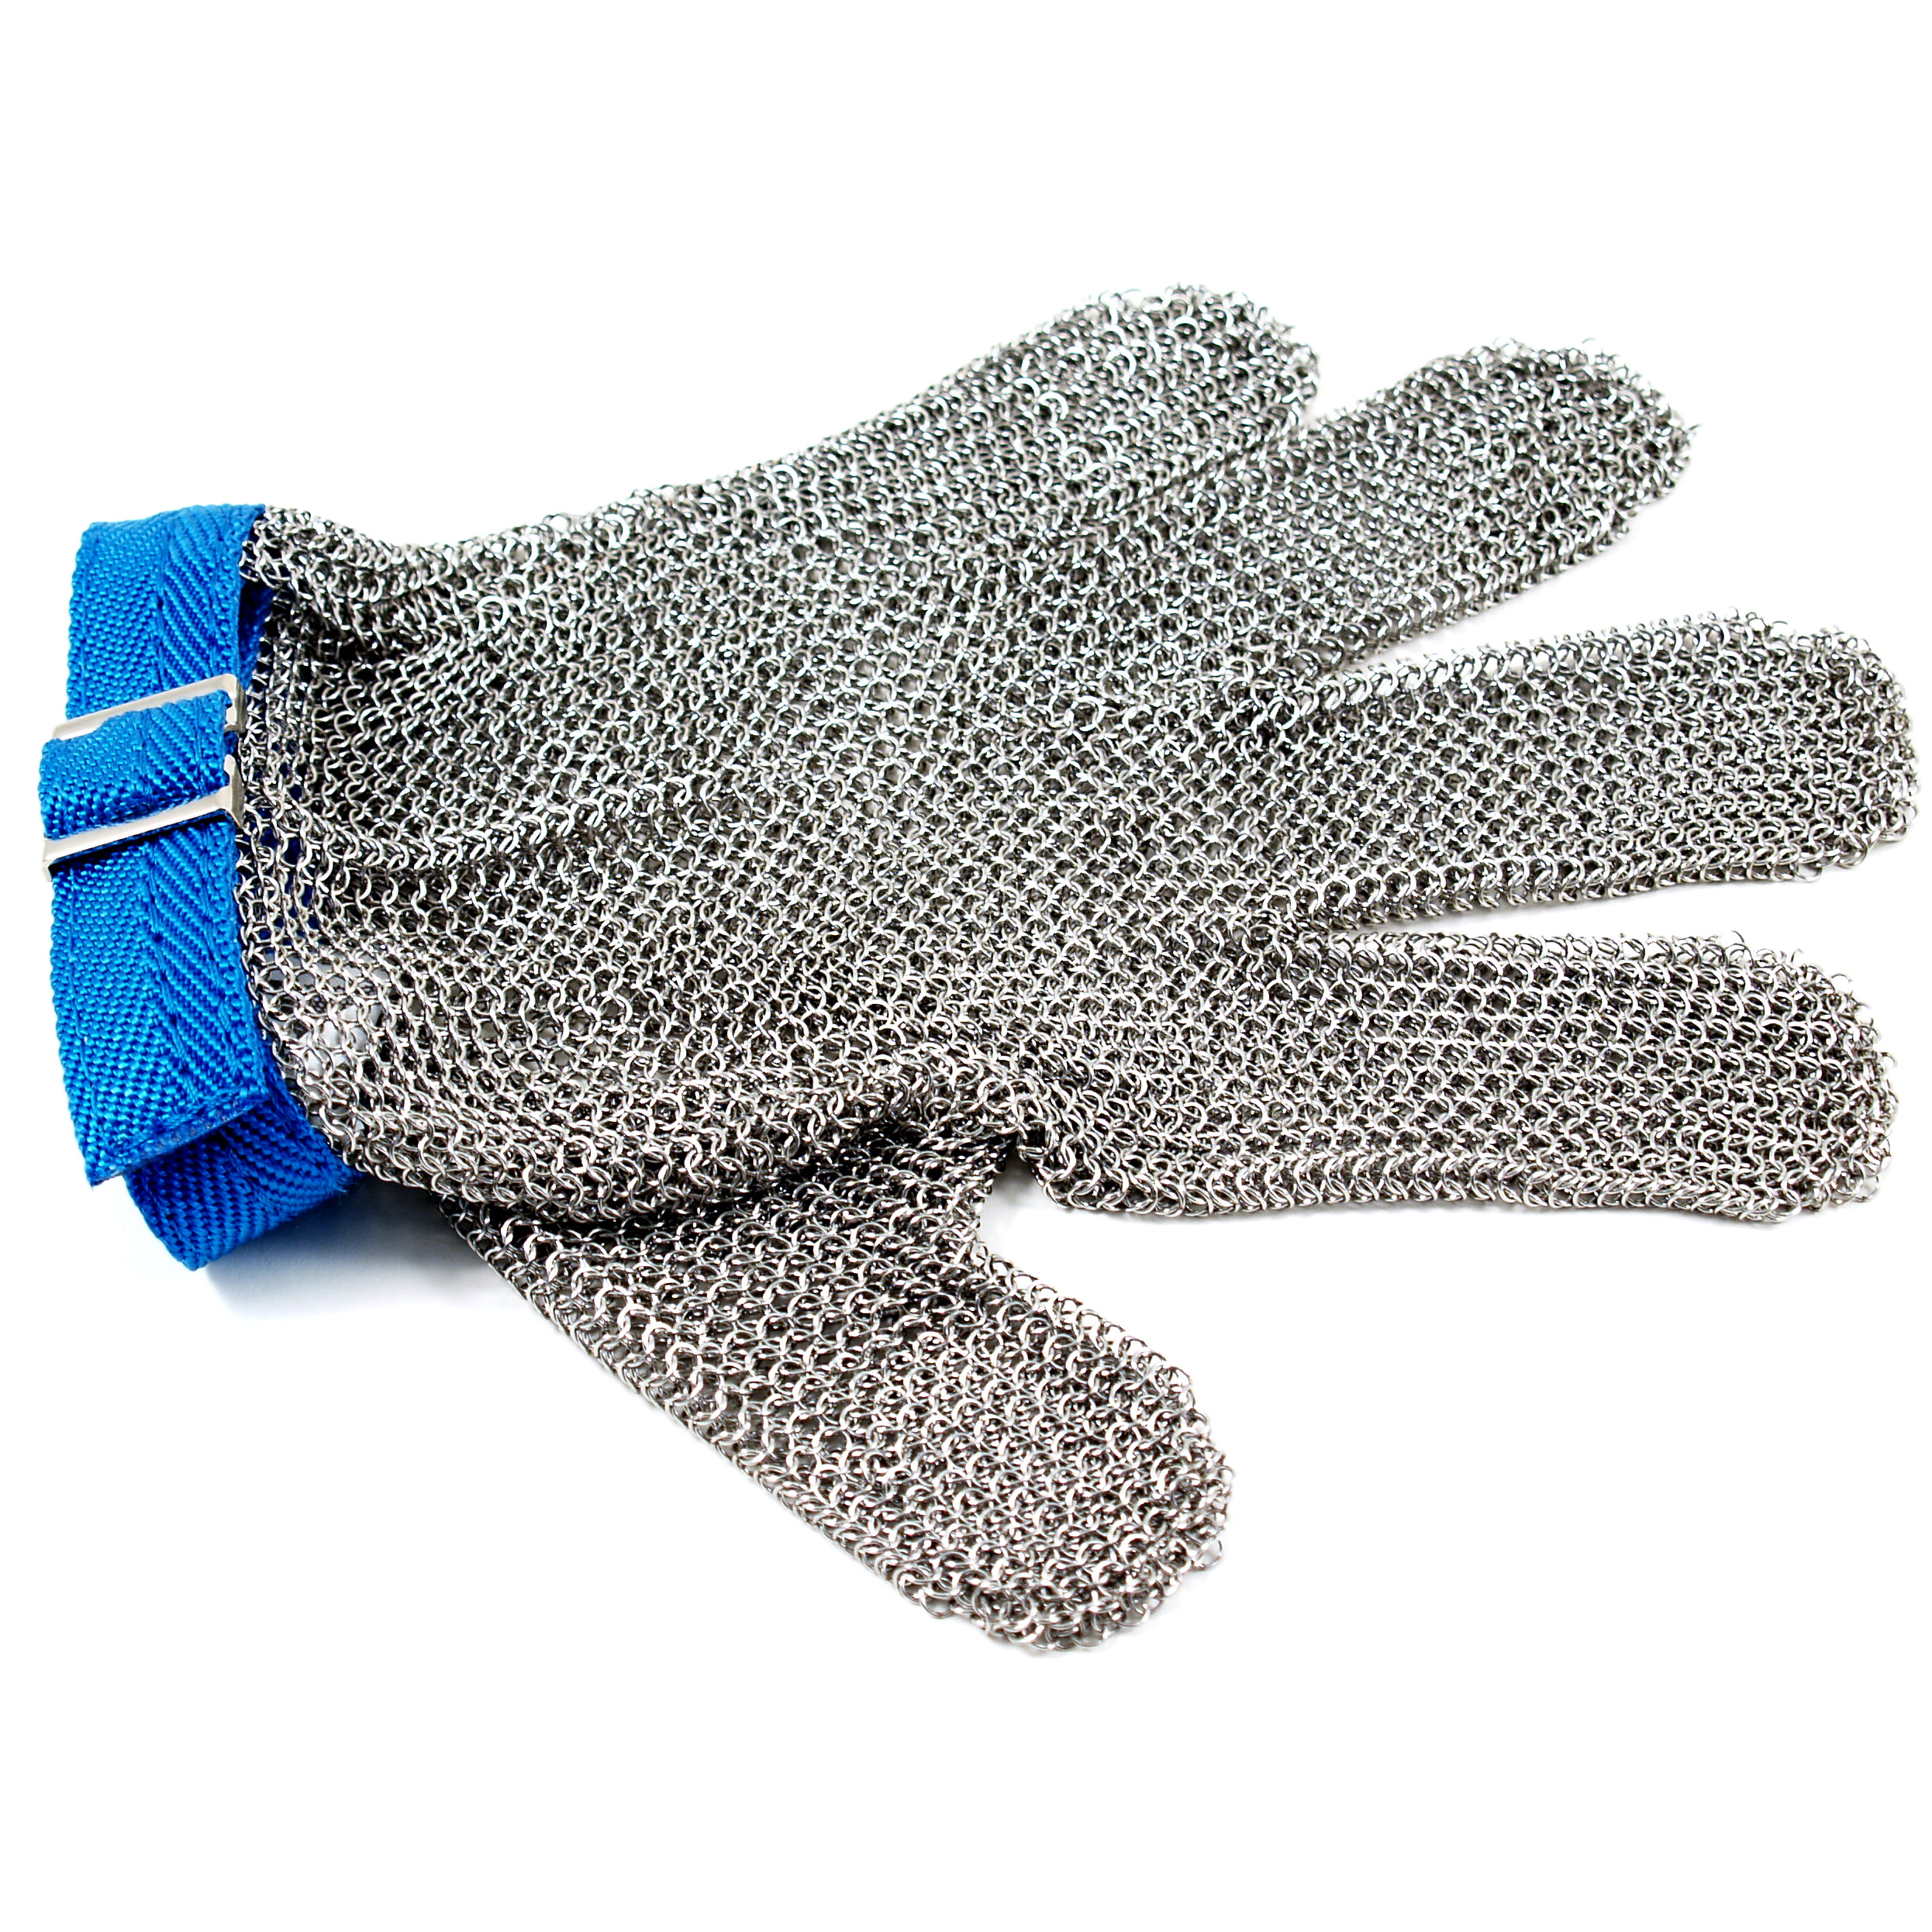 Victorinox HandShield Saf-T Guard Large Stainless Steel Mesh Safety Gloves